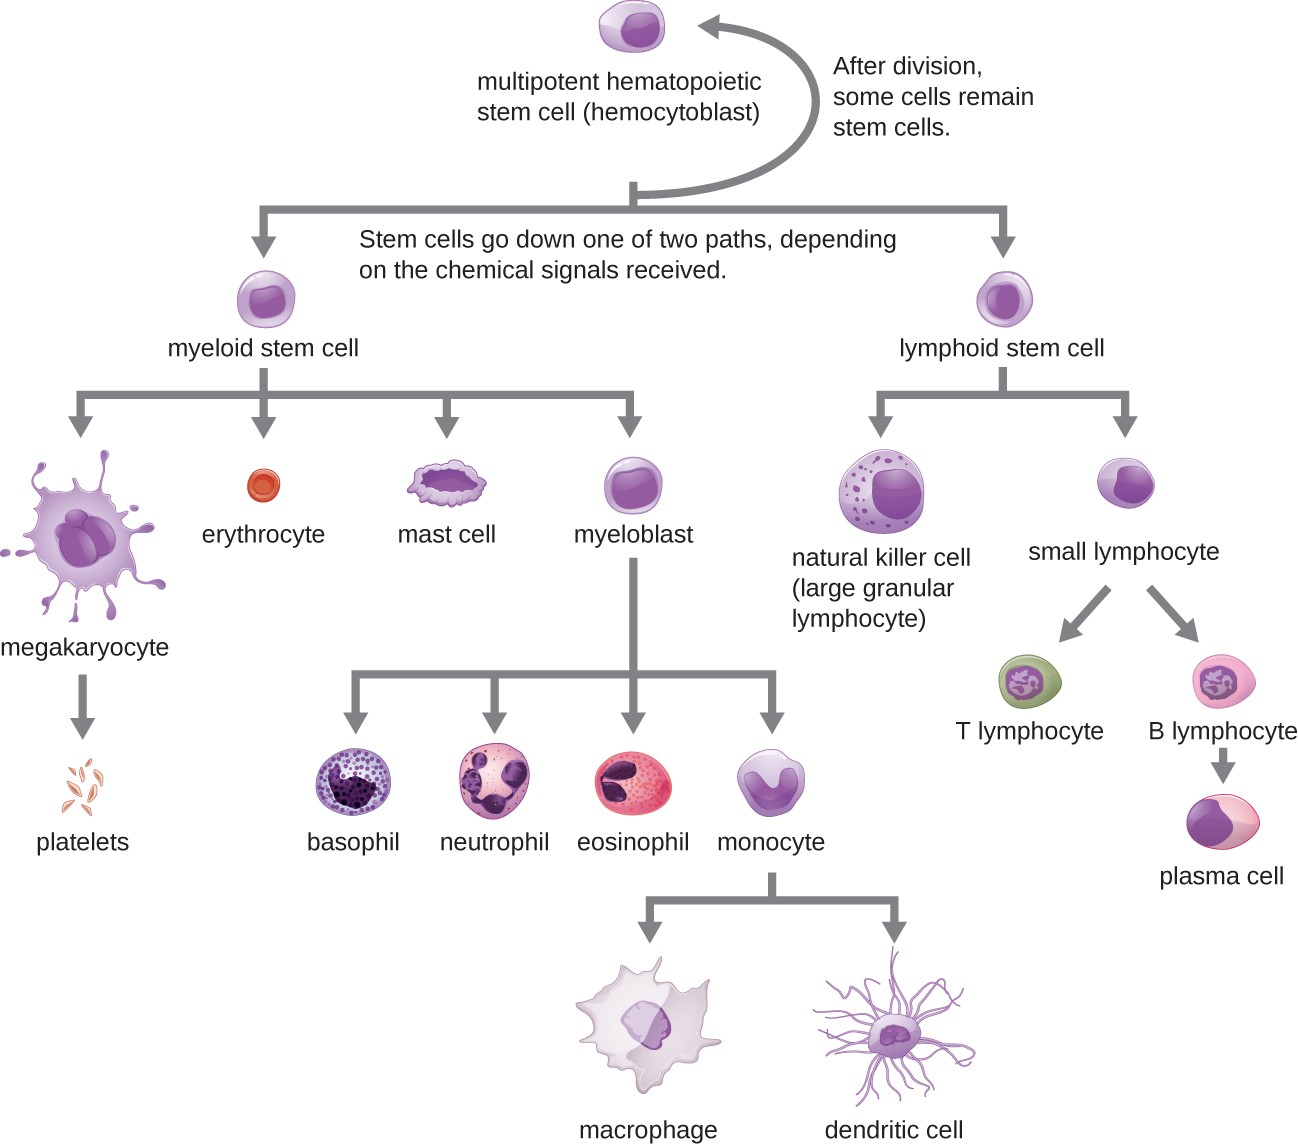 A flowchart showing progression of development for formed elements of blood. At the top is a multipotent hematopoietic stem cell (hemocytoblast). This cell divides and after division some of the new cells remain stem cells. Others go down one of two paths depending on the chemical signals received. One path begins with lymphoid stem cells which can either become natural killer cells (large granular lymphocytes) or small lymphocytes. The natural killer cell is a medium-large purple cell. Small lymphocytes can either become T lymphocytes or B lymphoctyes. The T and B lymphocytes are medium size cells with a large nucleus. B lymphocytes become plasma cells which are medium size cells with a large nucleus. The other option for the stem cell is to become a myeloid stem cell. Myeloid stem cells follow one of four paths. One path leads to megakaryocyte which leads to platelets. Platelets are small flecks. The second path leads to erythrocyte. Erythrocytes are small donut shaped red cells. The third path leads to mast cells. The fourth path leads to basophil, neutrophil, eosinophil, or monocyte. Basophils are medium cells with many dark purple spots. Neutrophils are medium pink cells with a multi-lobbed nucleus. Eosinophils are medium size cells with many pink spots. Monocytes lead to macrophages or dendritic cells. Macrophages are large irregularly shaped cells. Dendritic cells have longer tendons branching off of them.